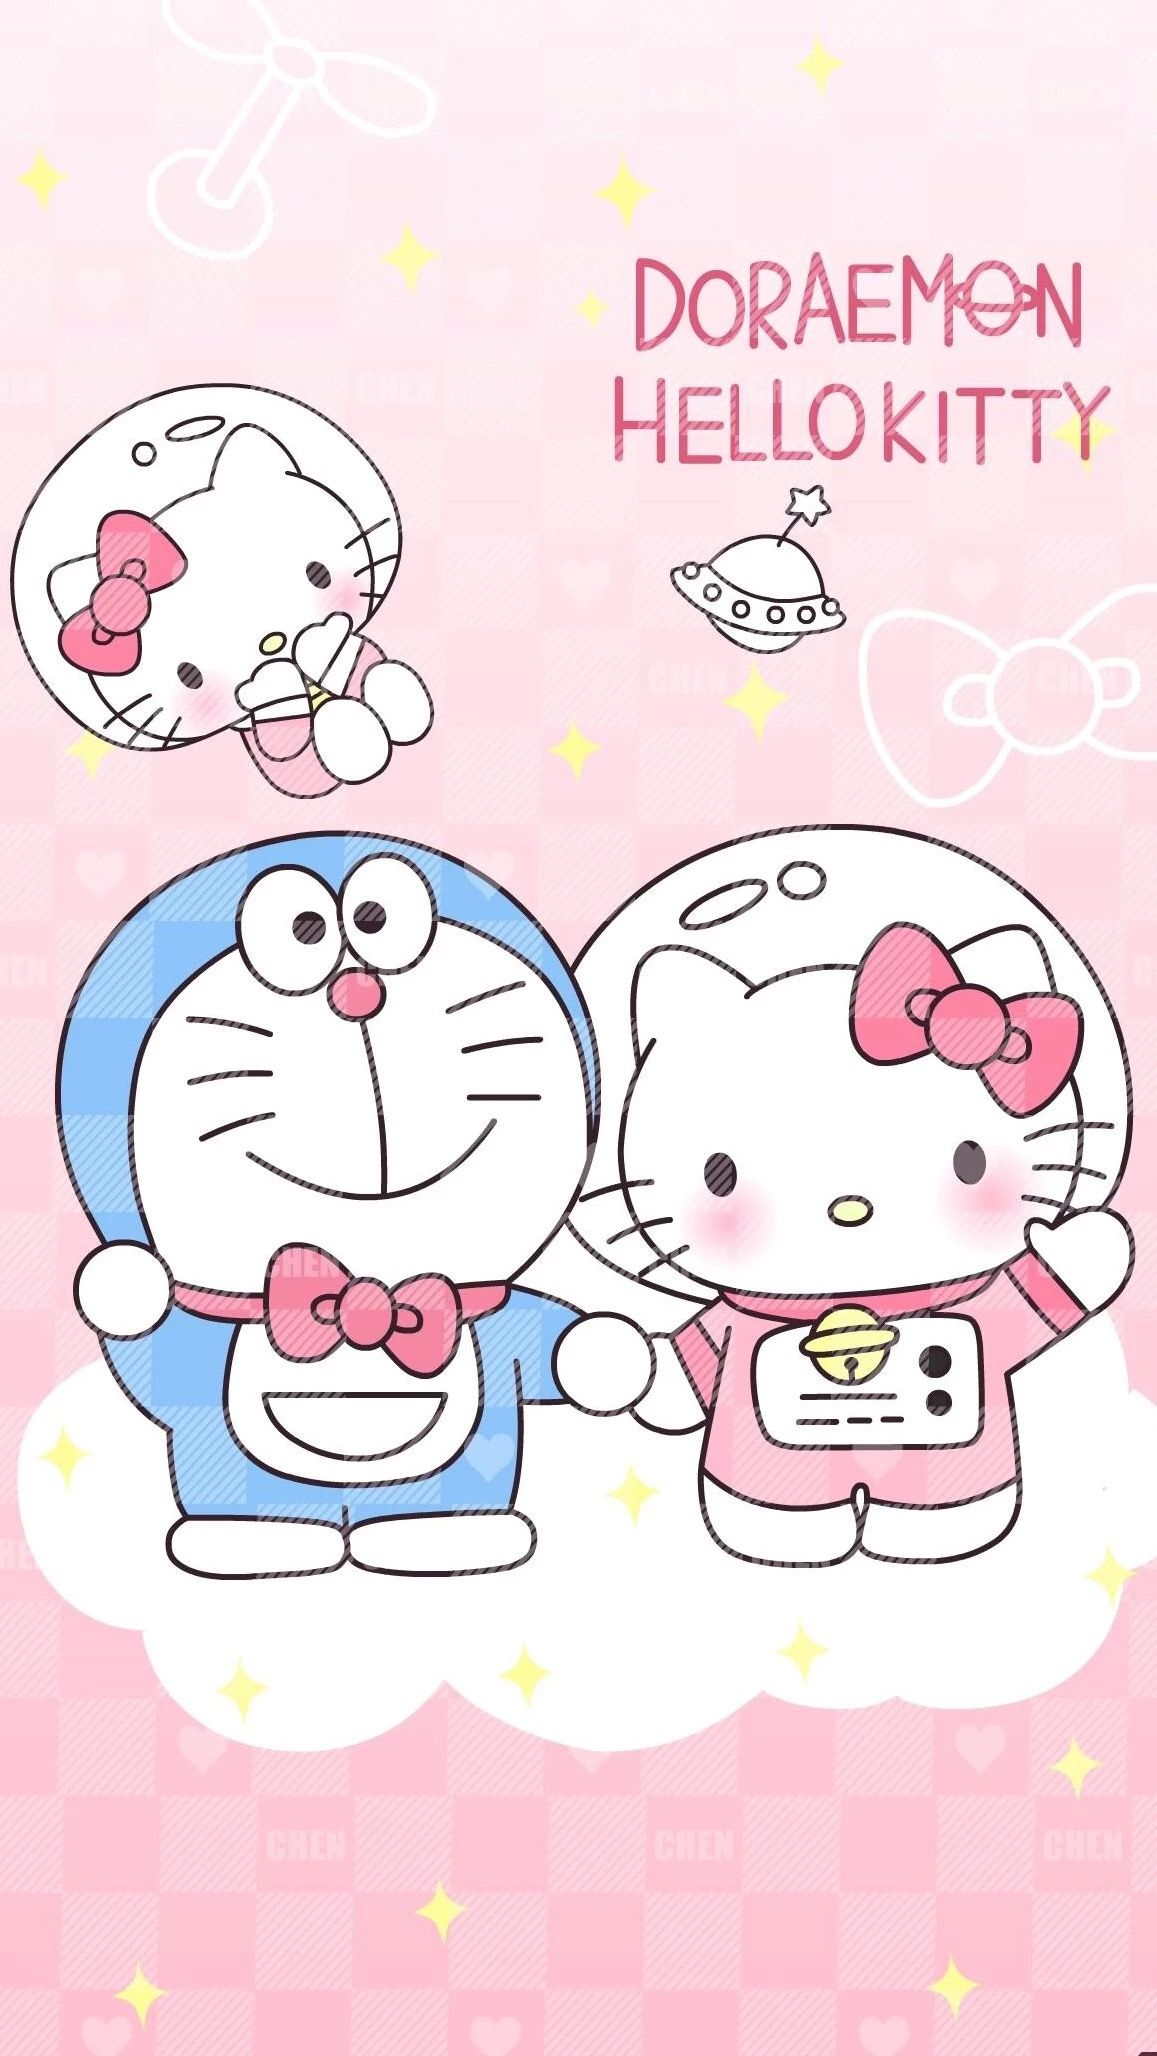 Pin By Aomsin Aomsin On Wallpaper Hello Kitty Hello Kitty Pictures Hello Kitty Sanrio Hello Kitty Doraemon picture wall wallpaper price